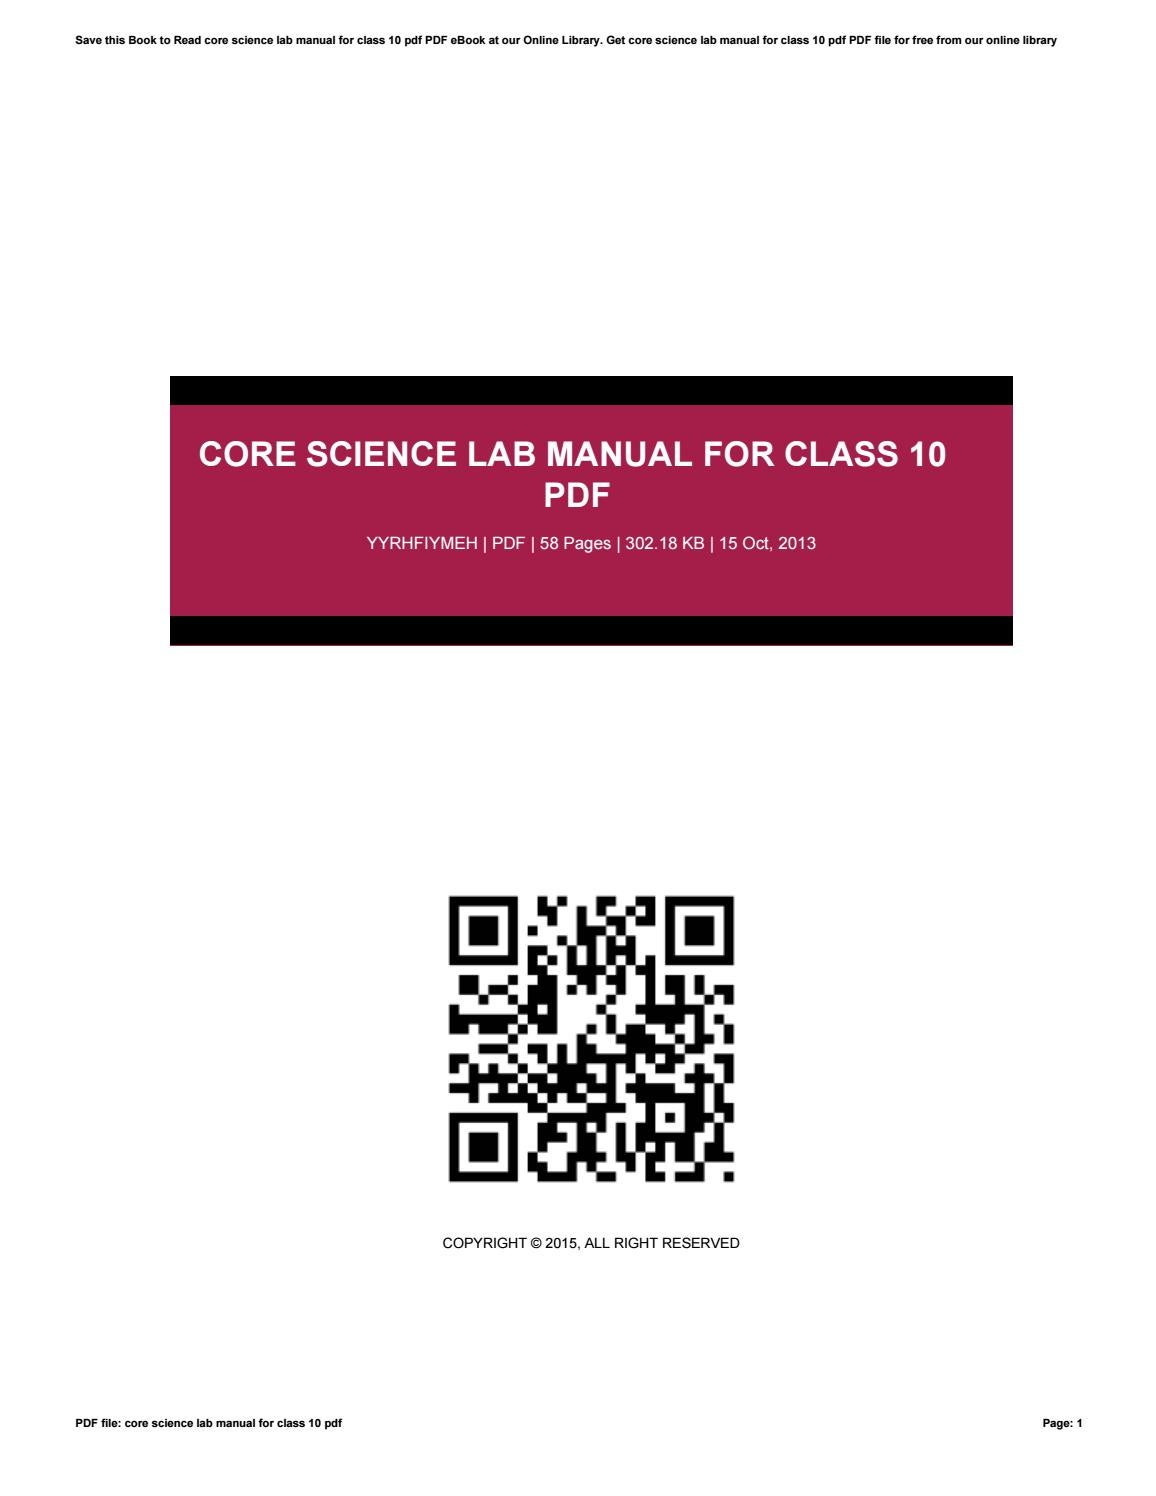 Core science lab manual for class 10 pdf